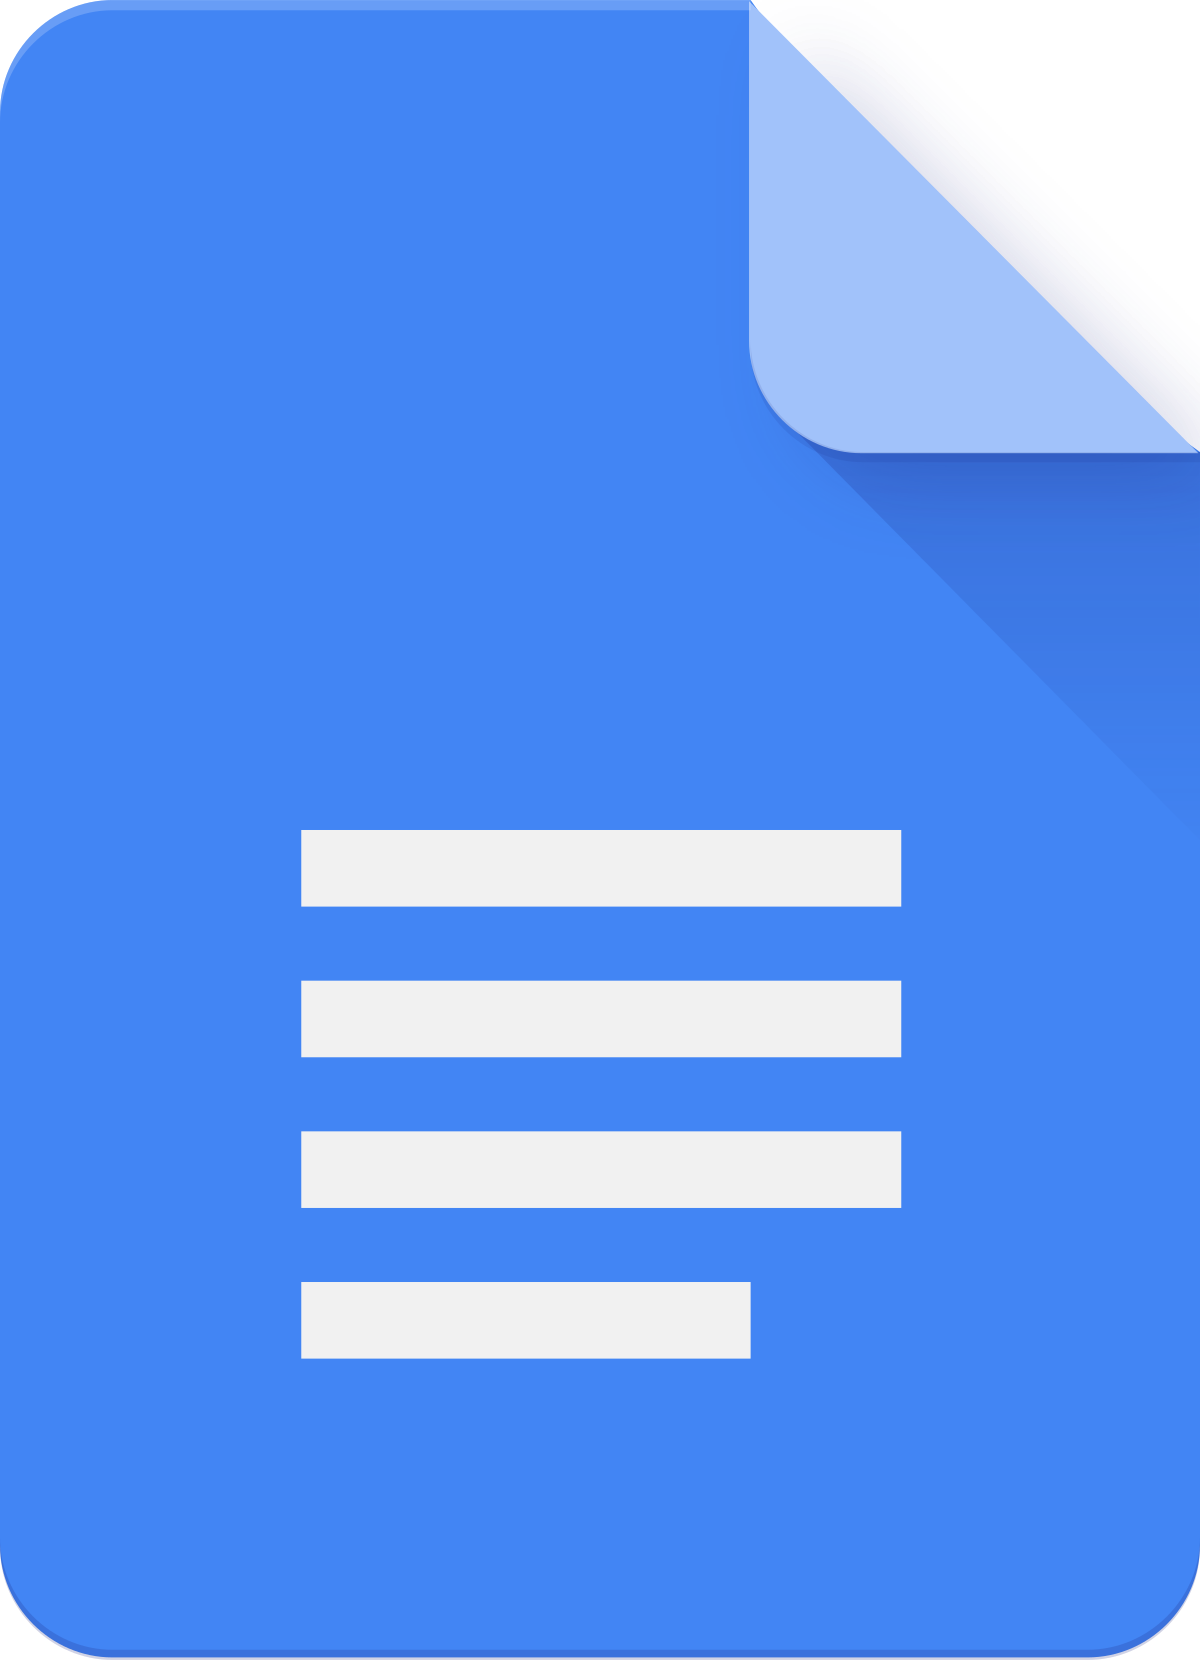 Google Docs - Document Creation Software : SaaSworthy.com